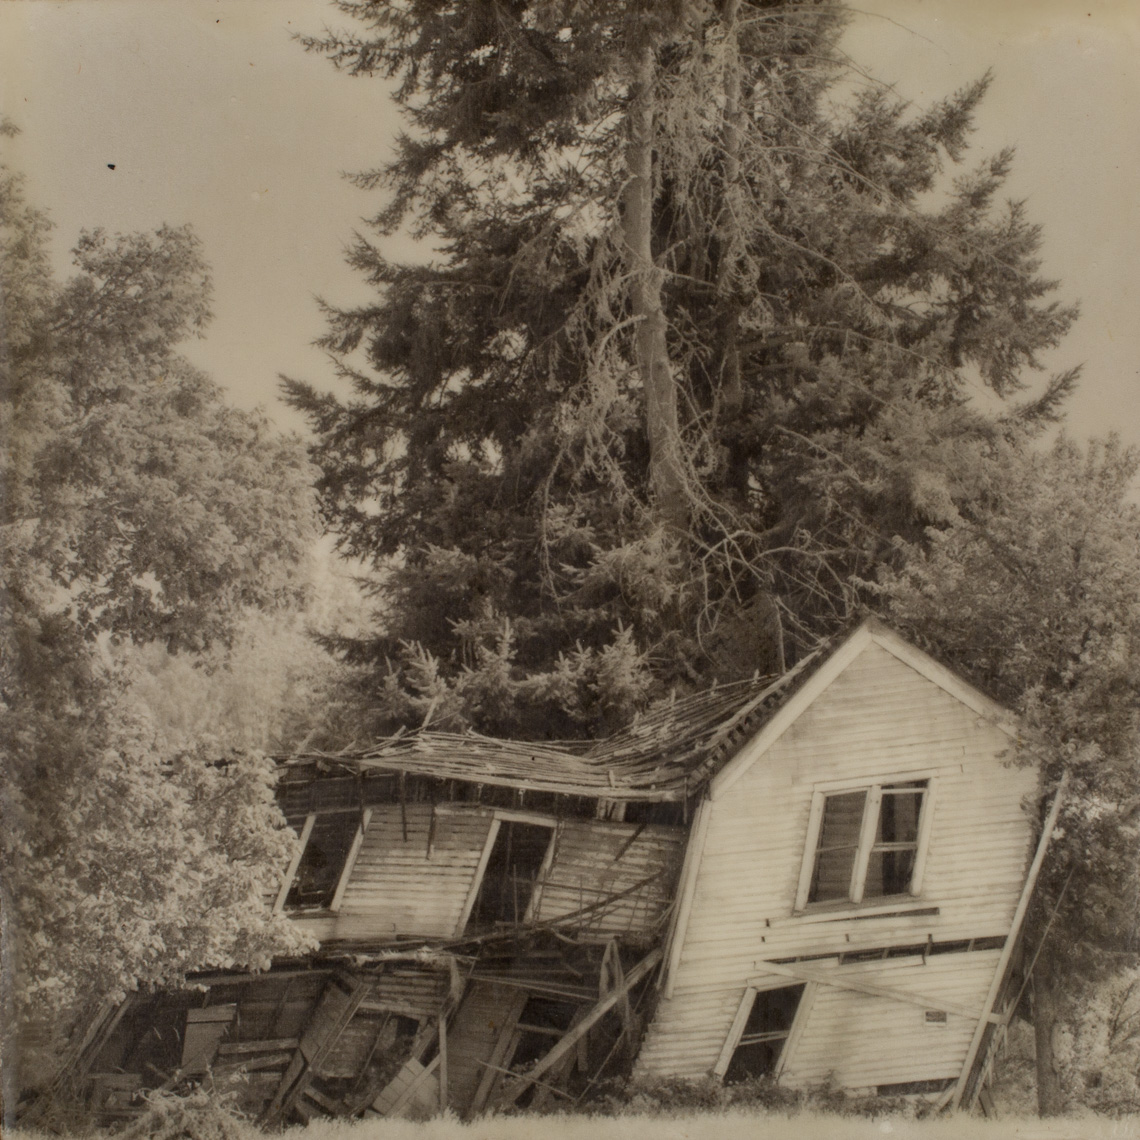 Yamhill, Leaning House